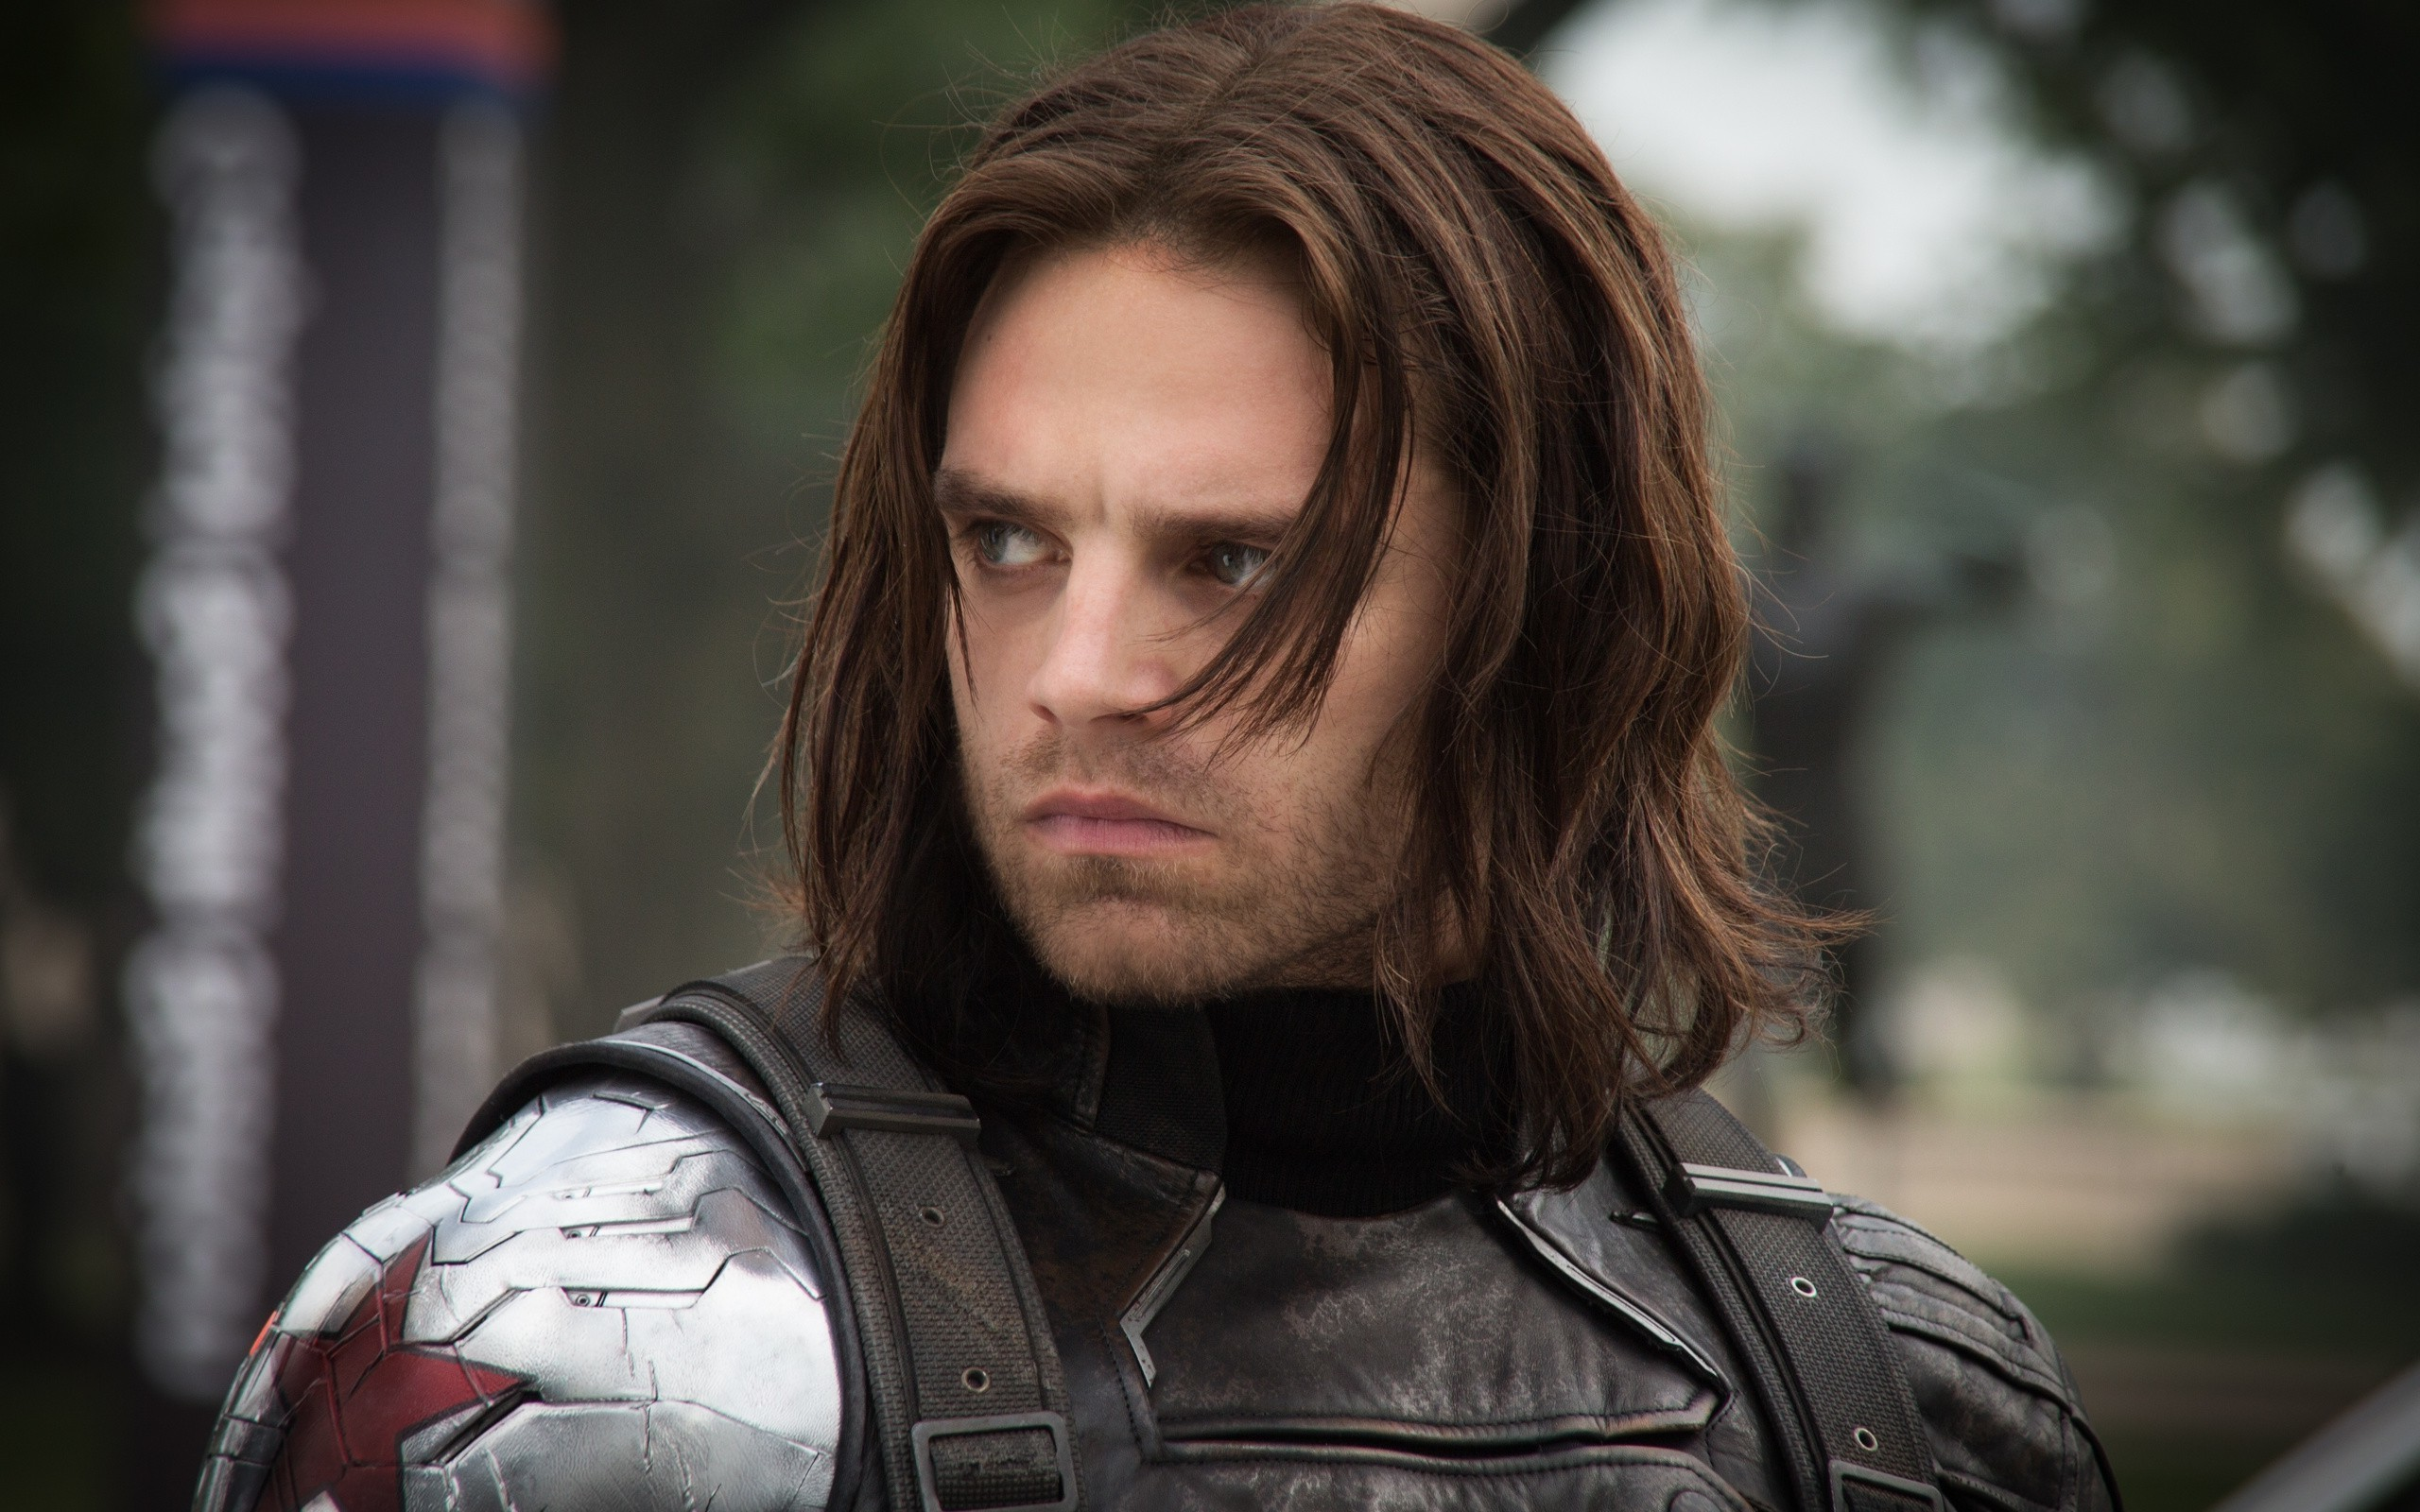 Discussing Fandom: Bucky Barnes in Captain America: Winter Soldier, Marvel Studios, 2016